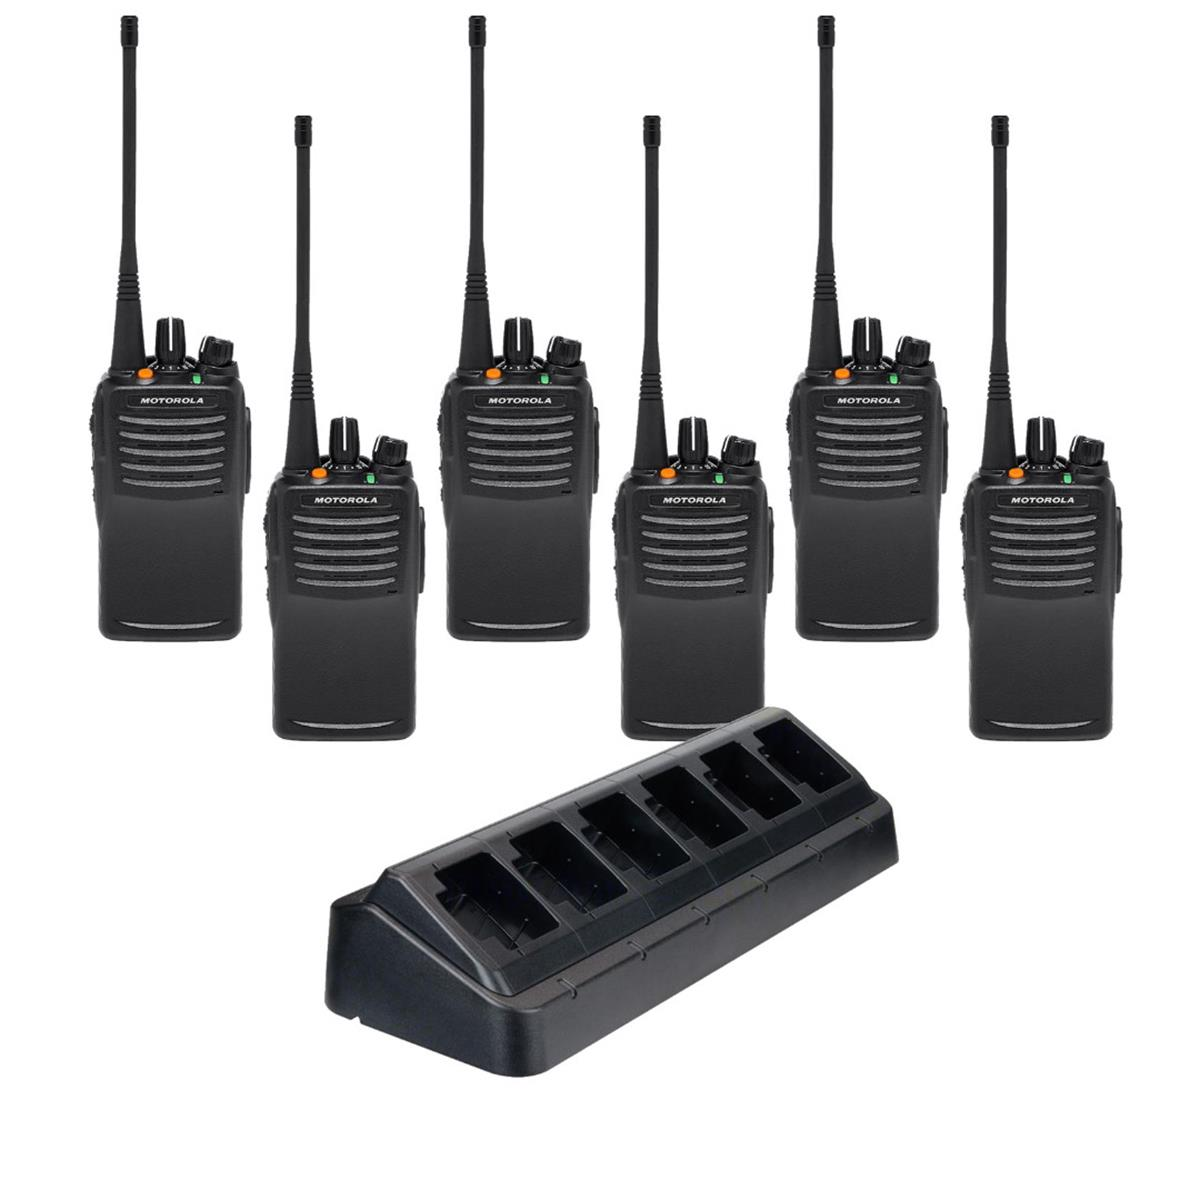 VX-451 VHF or UHF Radio 6 Pack w/Multi-Charger